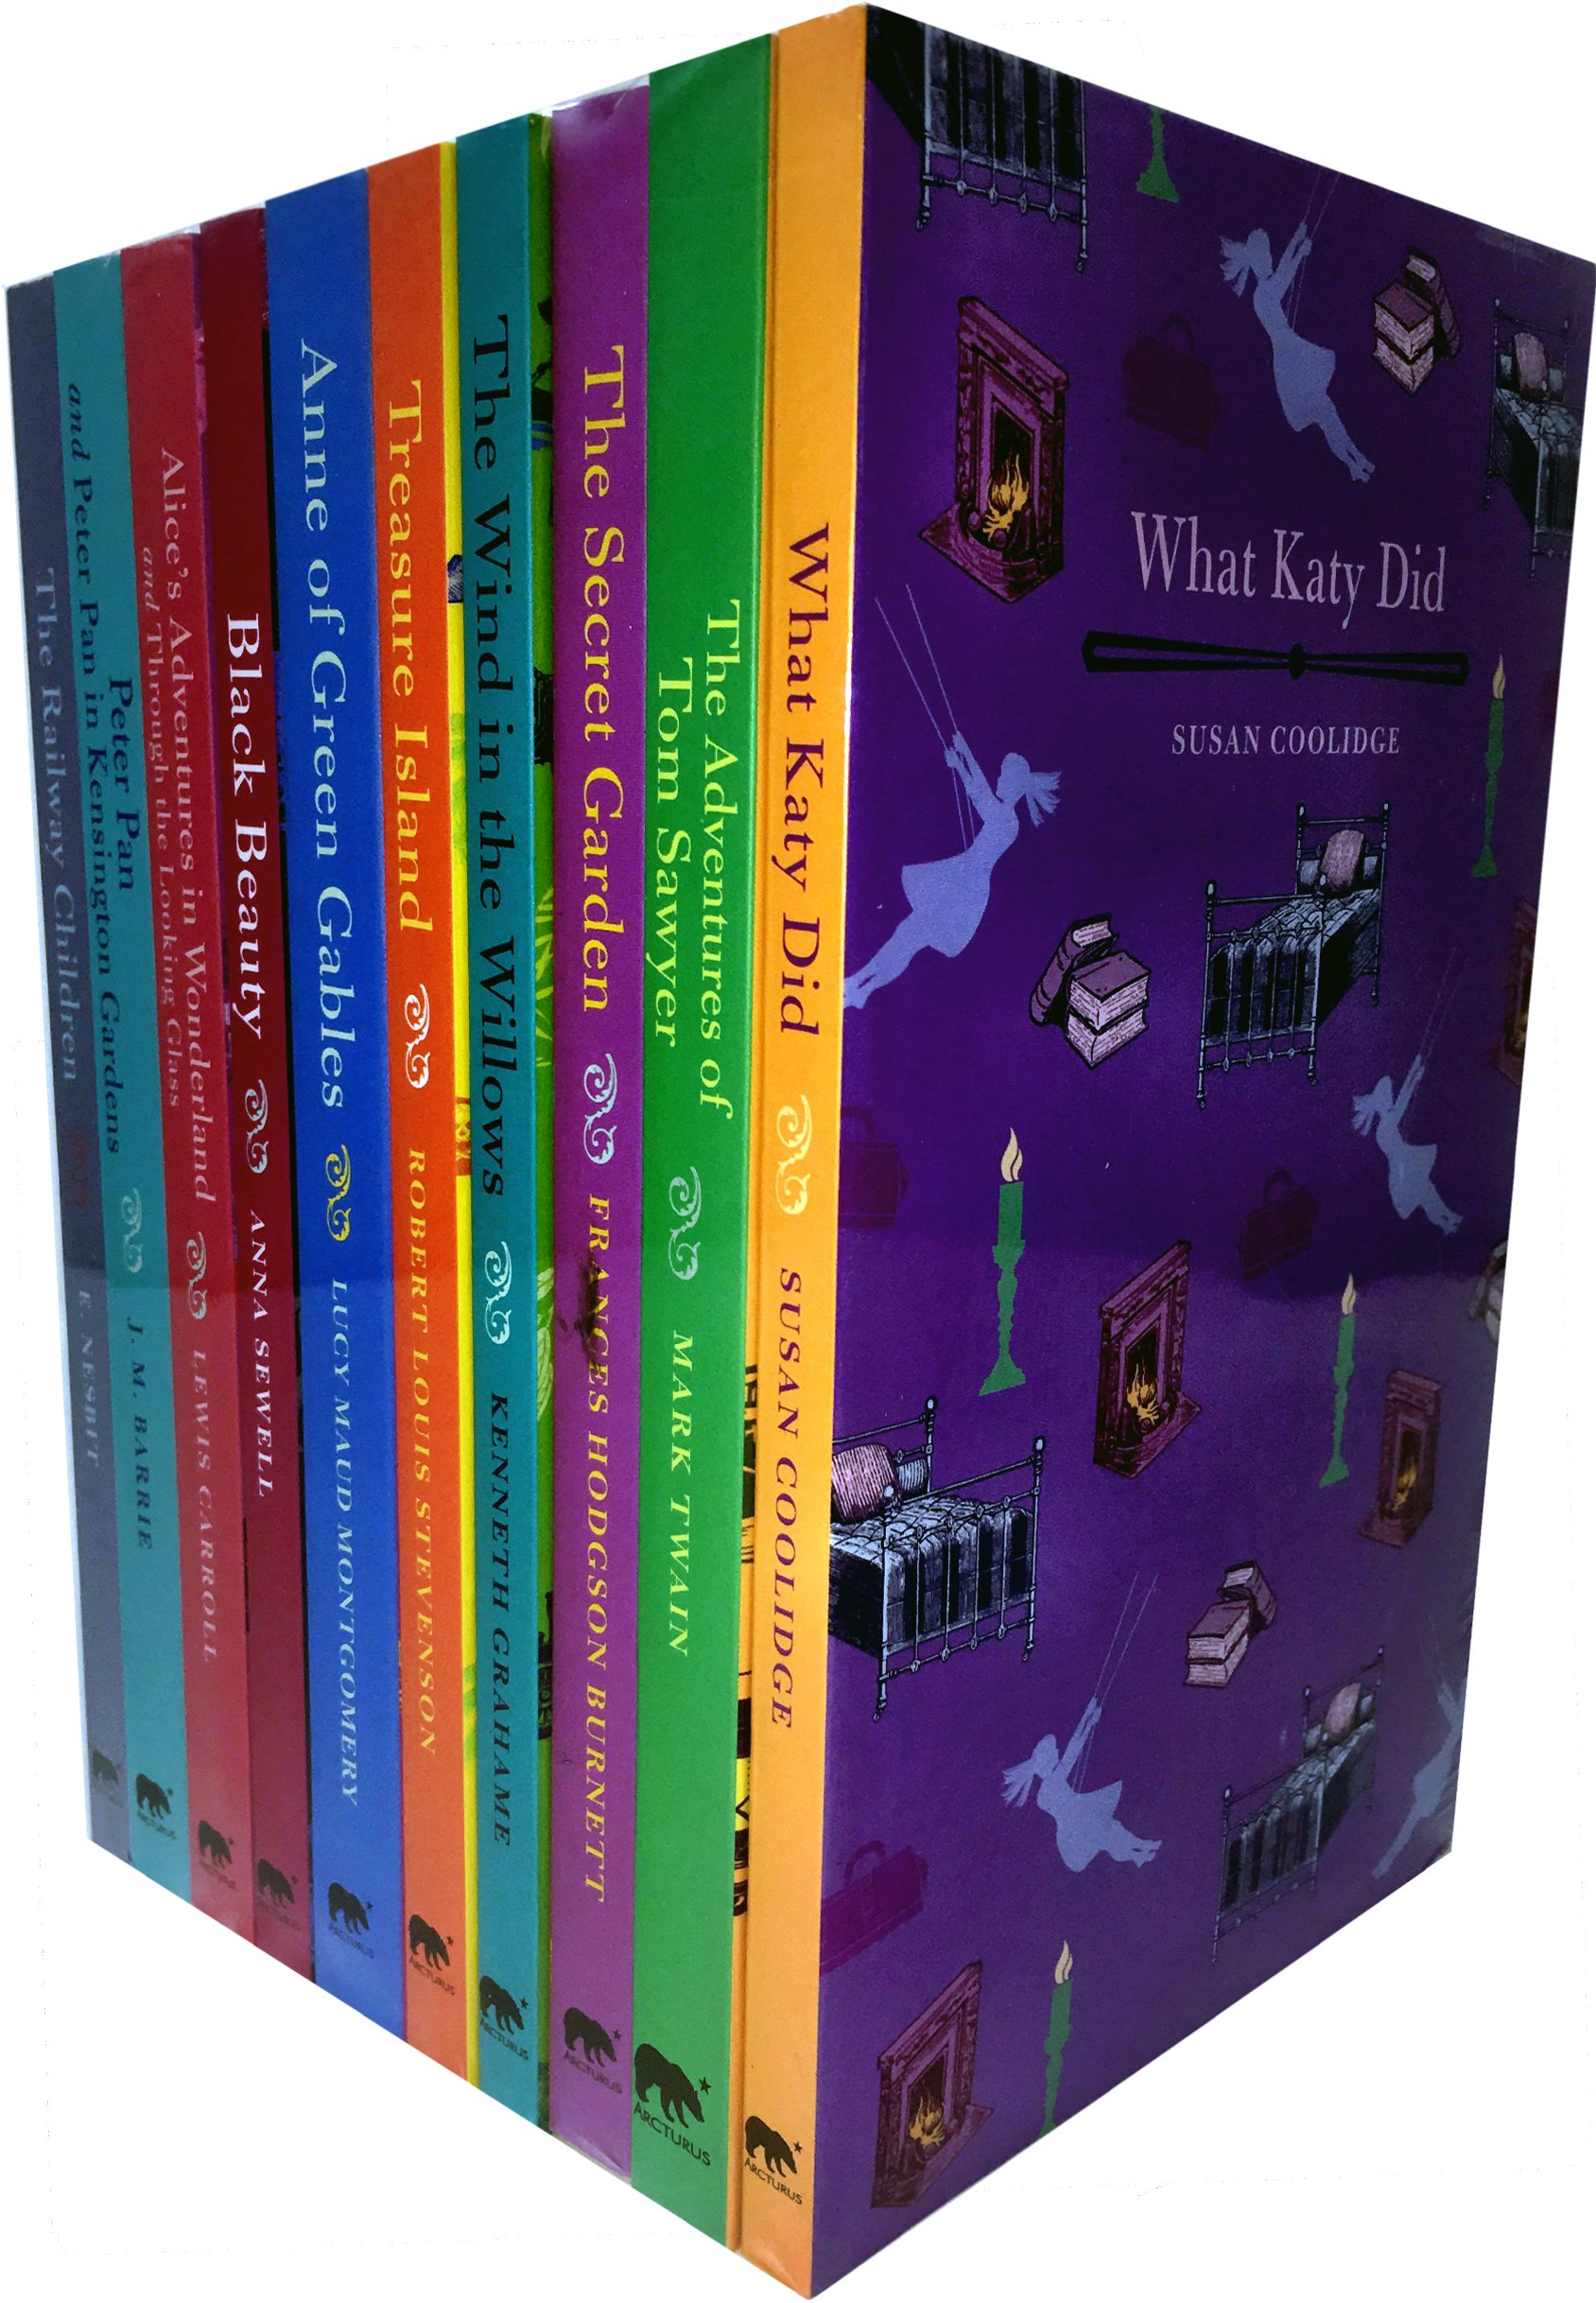 Read Online Childrens Classics Collection 10 Books Set (The Secret Garden, Anne of Green Gables, Black Beauty, Treasure Island, Peter Pan in Kensington Gardens, The Adventures of Tom Sawyer, Peter Pan) PDF